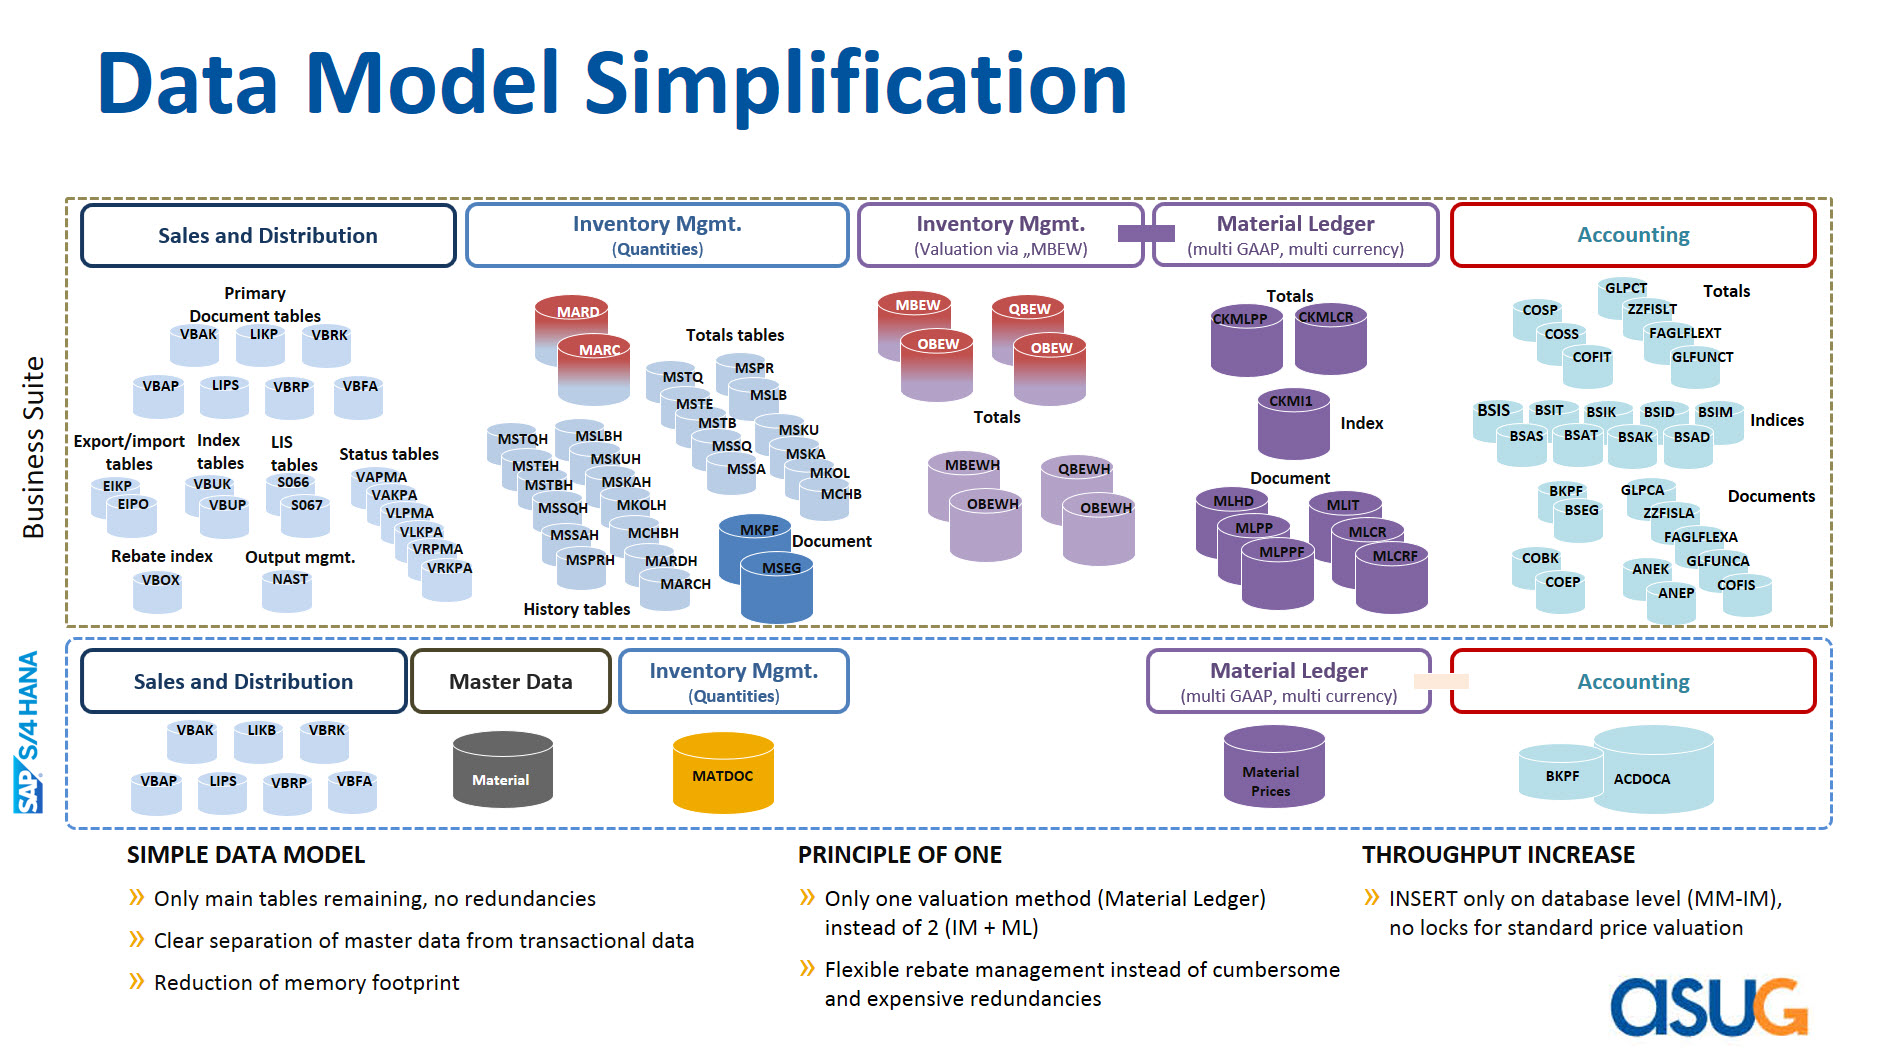 sap sales and distribution Sap r/3 sales and distribution module the sales and distribution module covers the business path of an order from initiation (and even pre-initiation), to order fulfillment all the different processes of the order life-cycle are linked within sd and to relevant processes outside sd eg, financial accounting and material management.